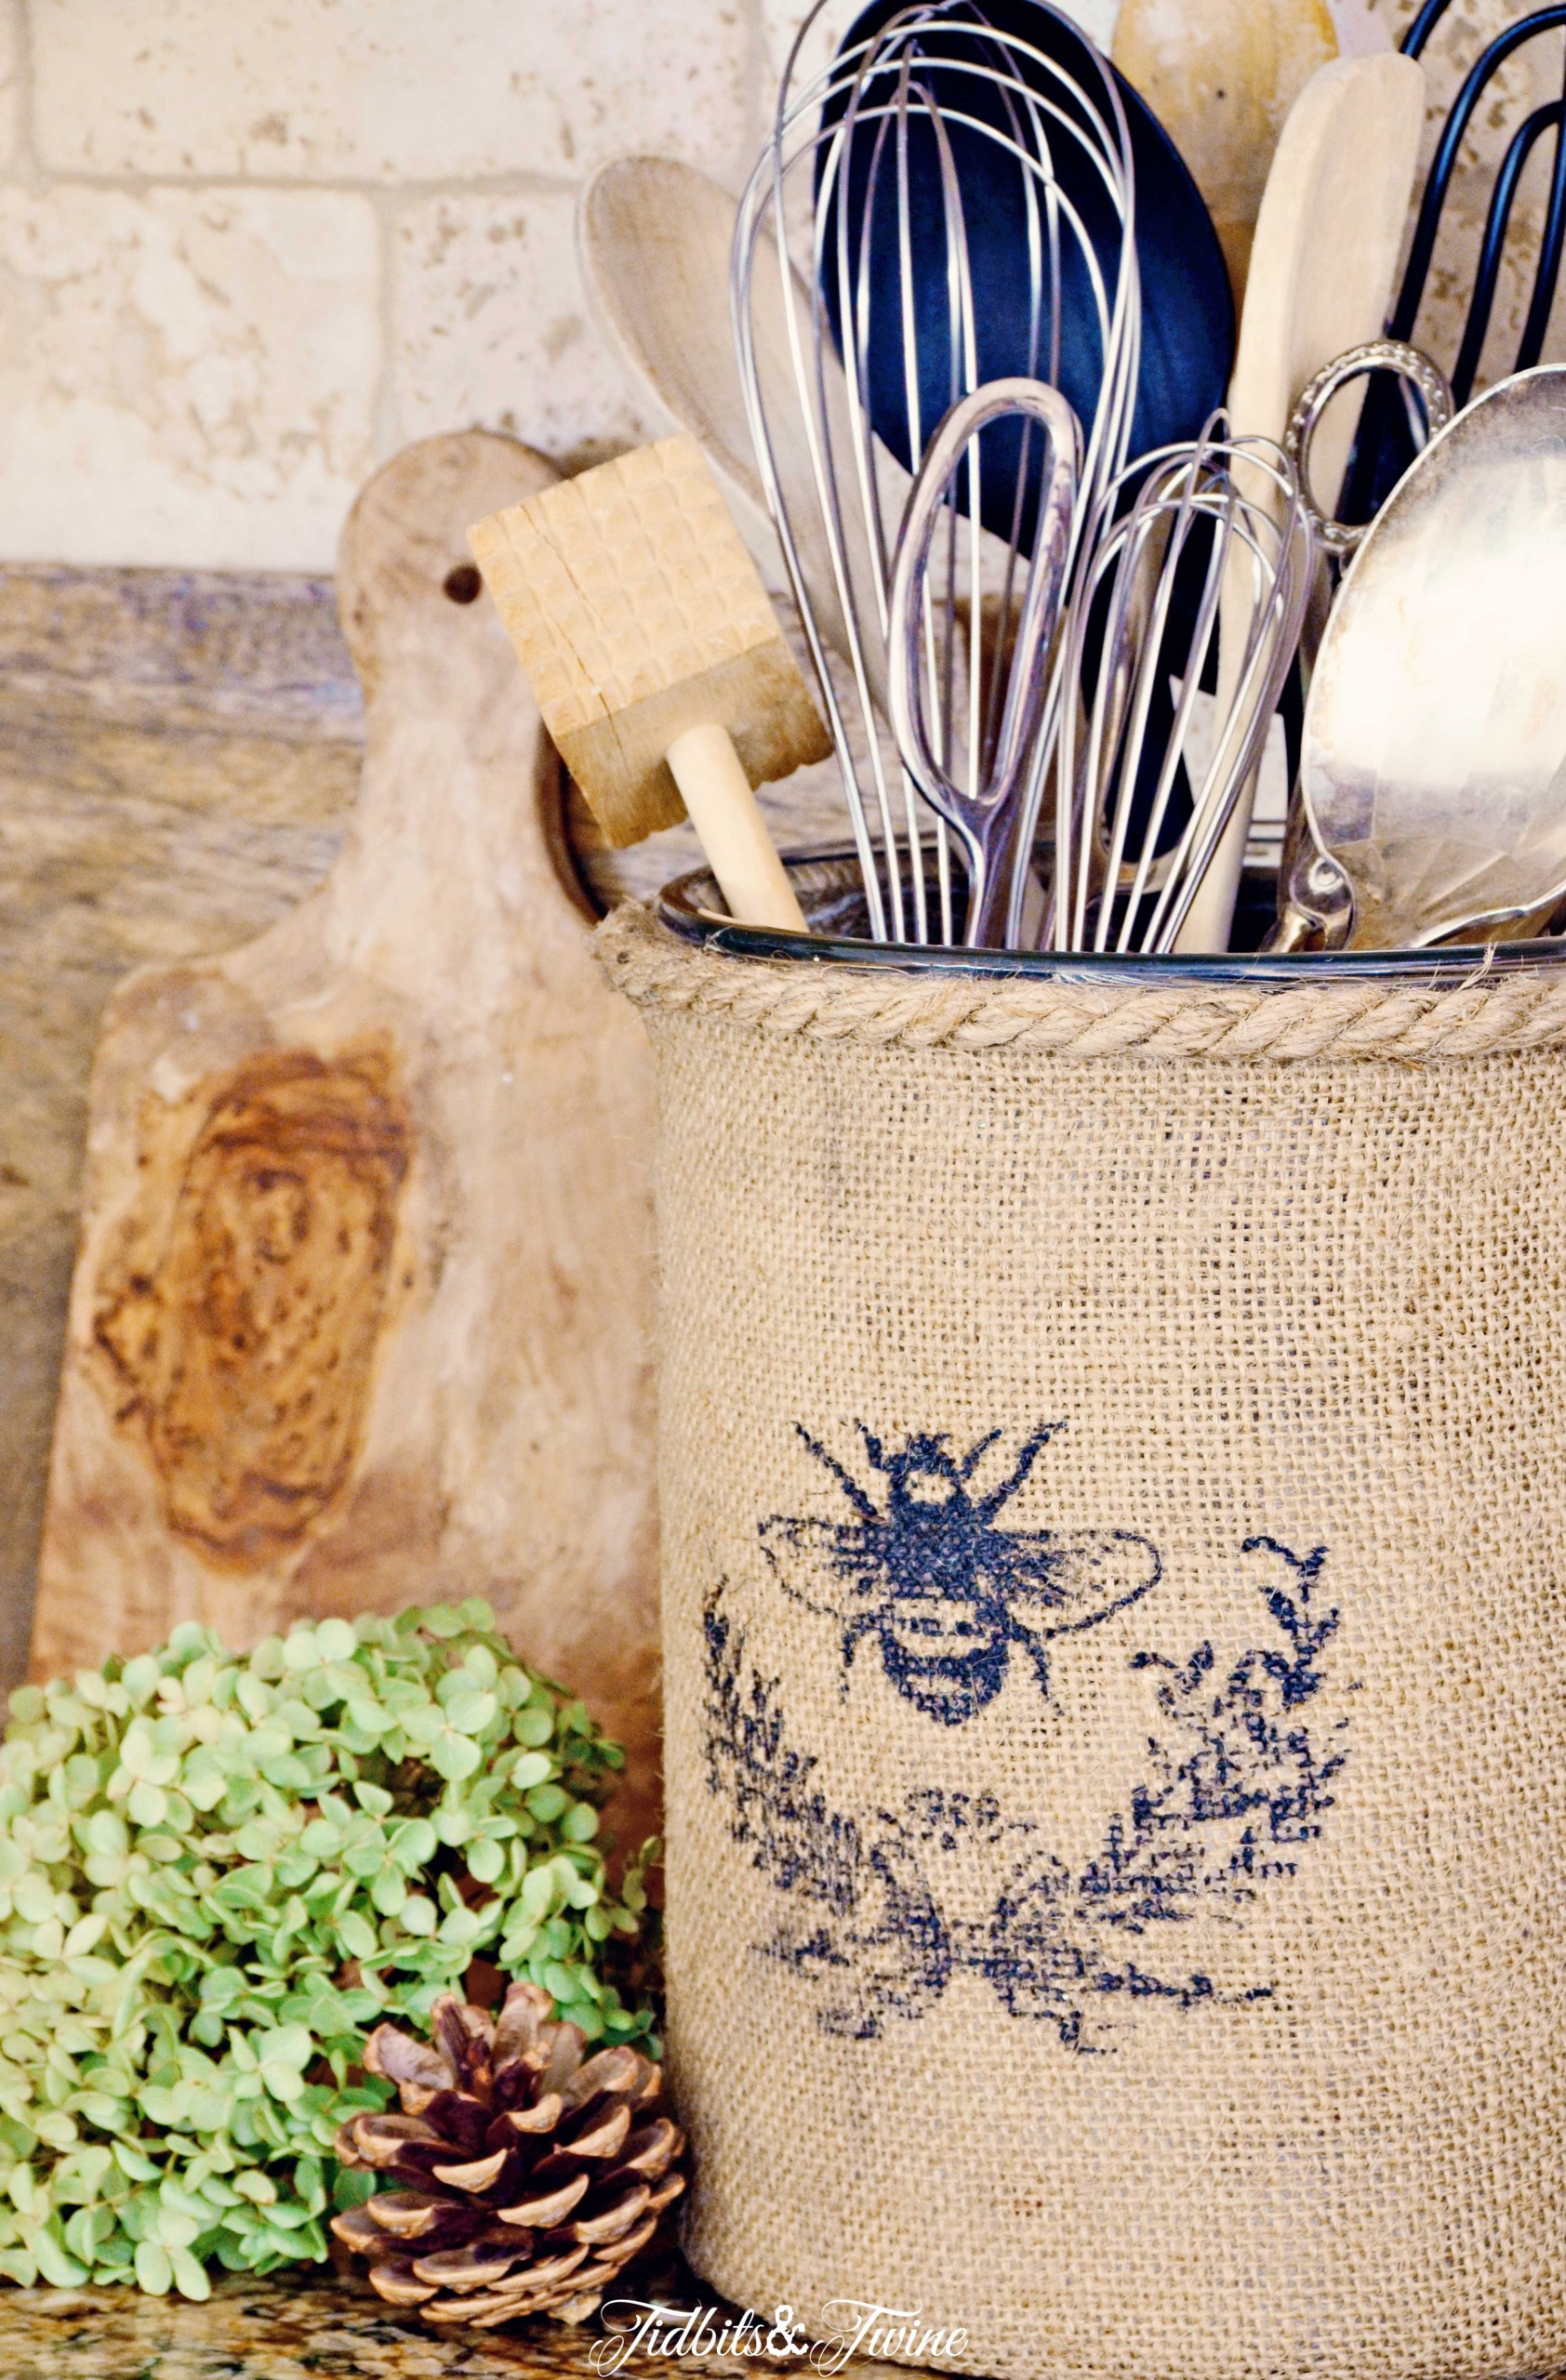 Burlap covered vase holding kitchen utensils in a French farmhouse kitchen